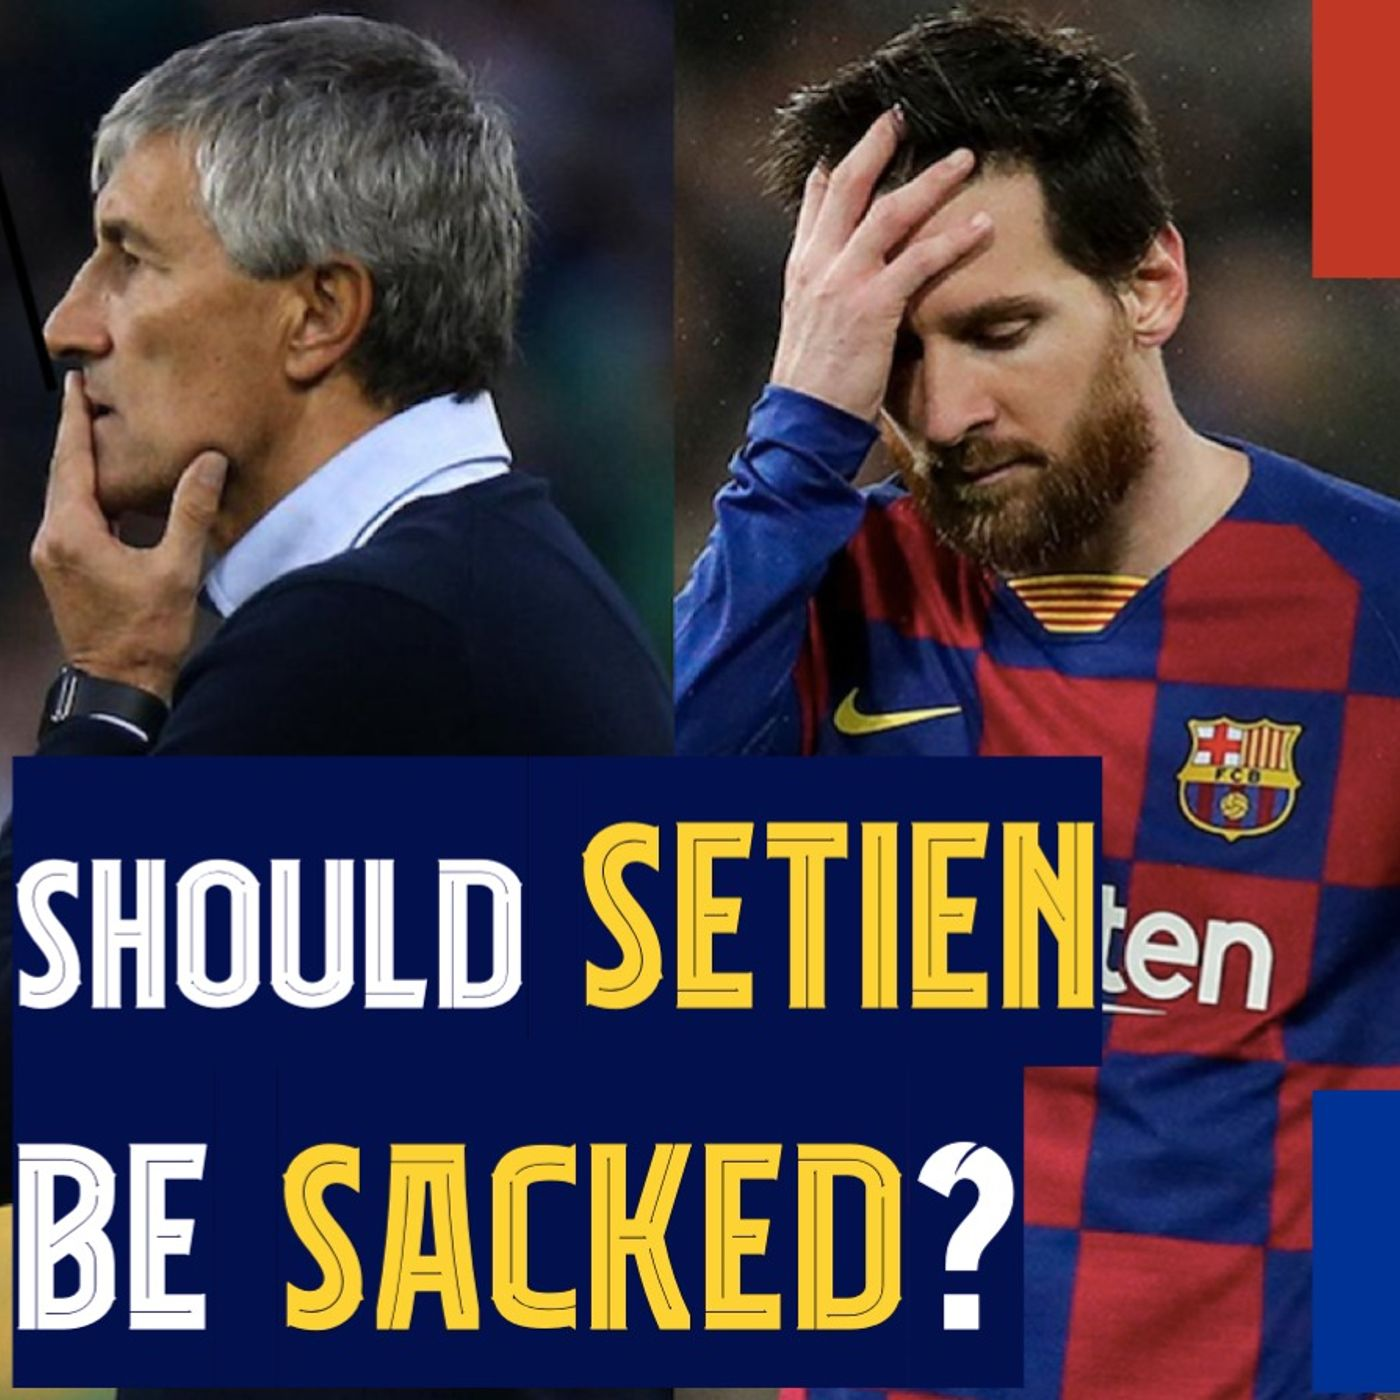 Should Barcelona sack Setién? Unlimited player power, institutional crisis, and Griezmann humiliation